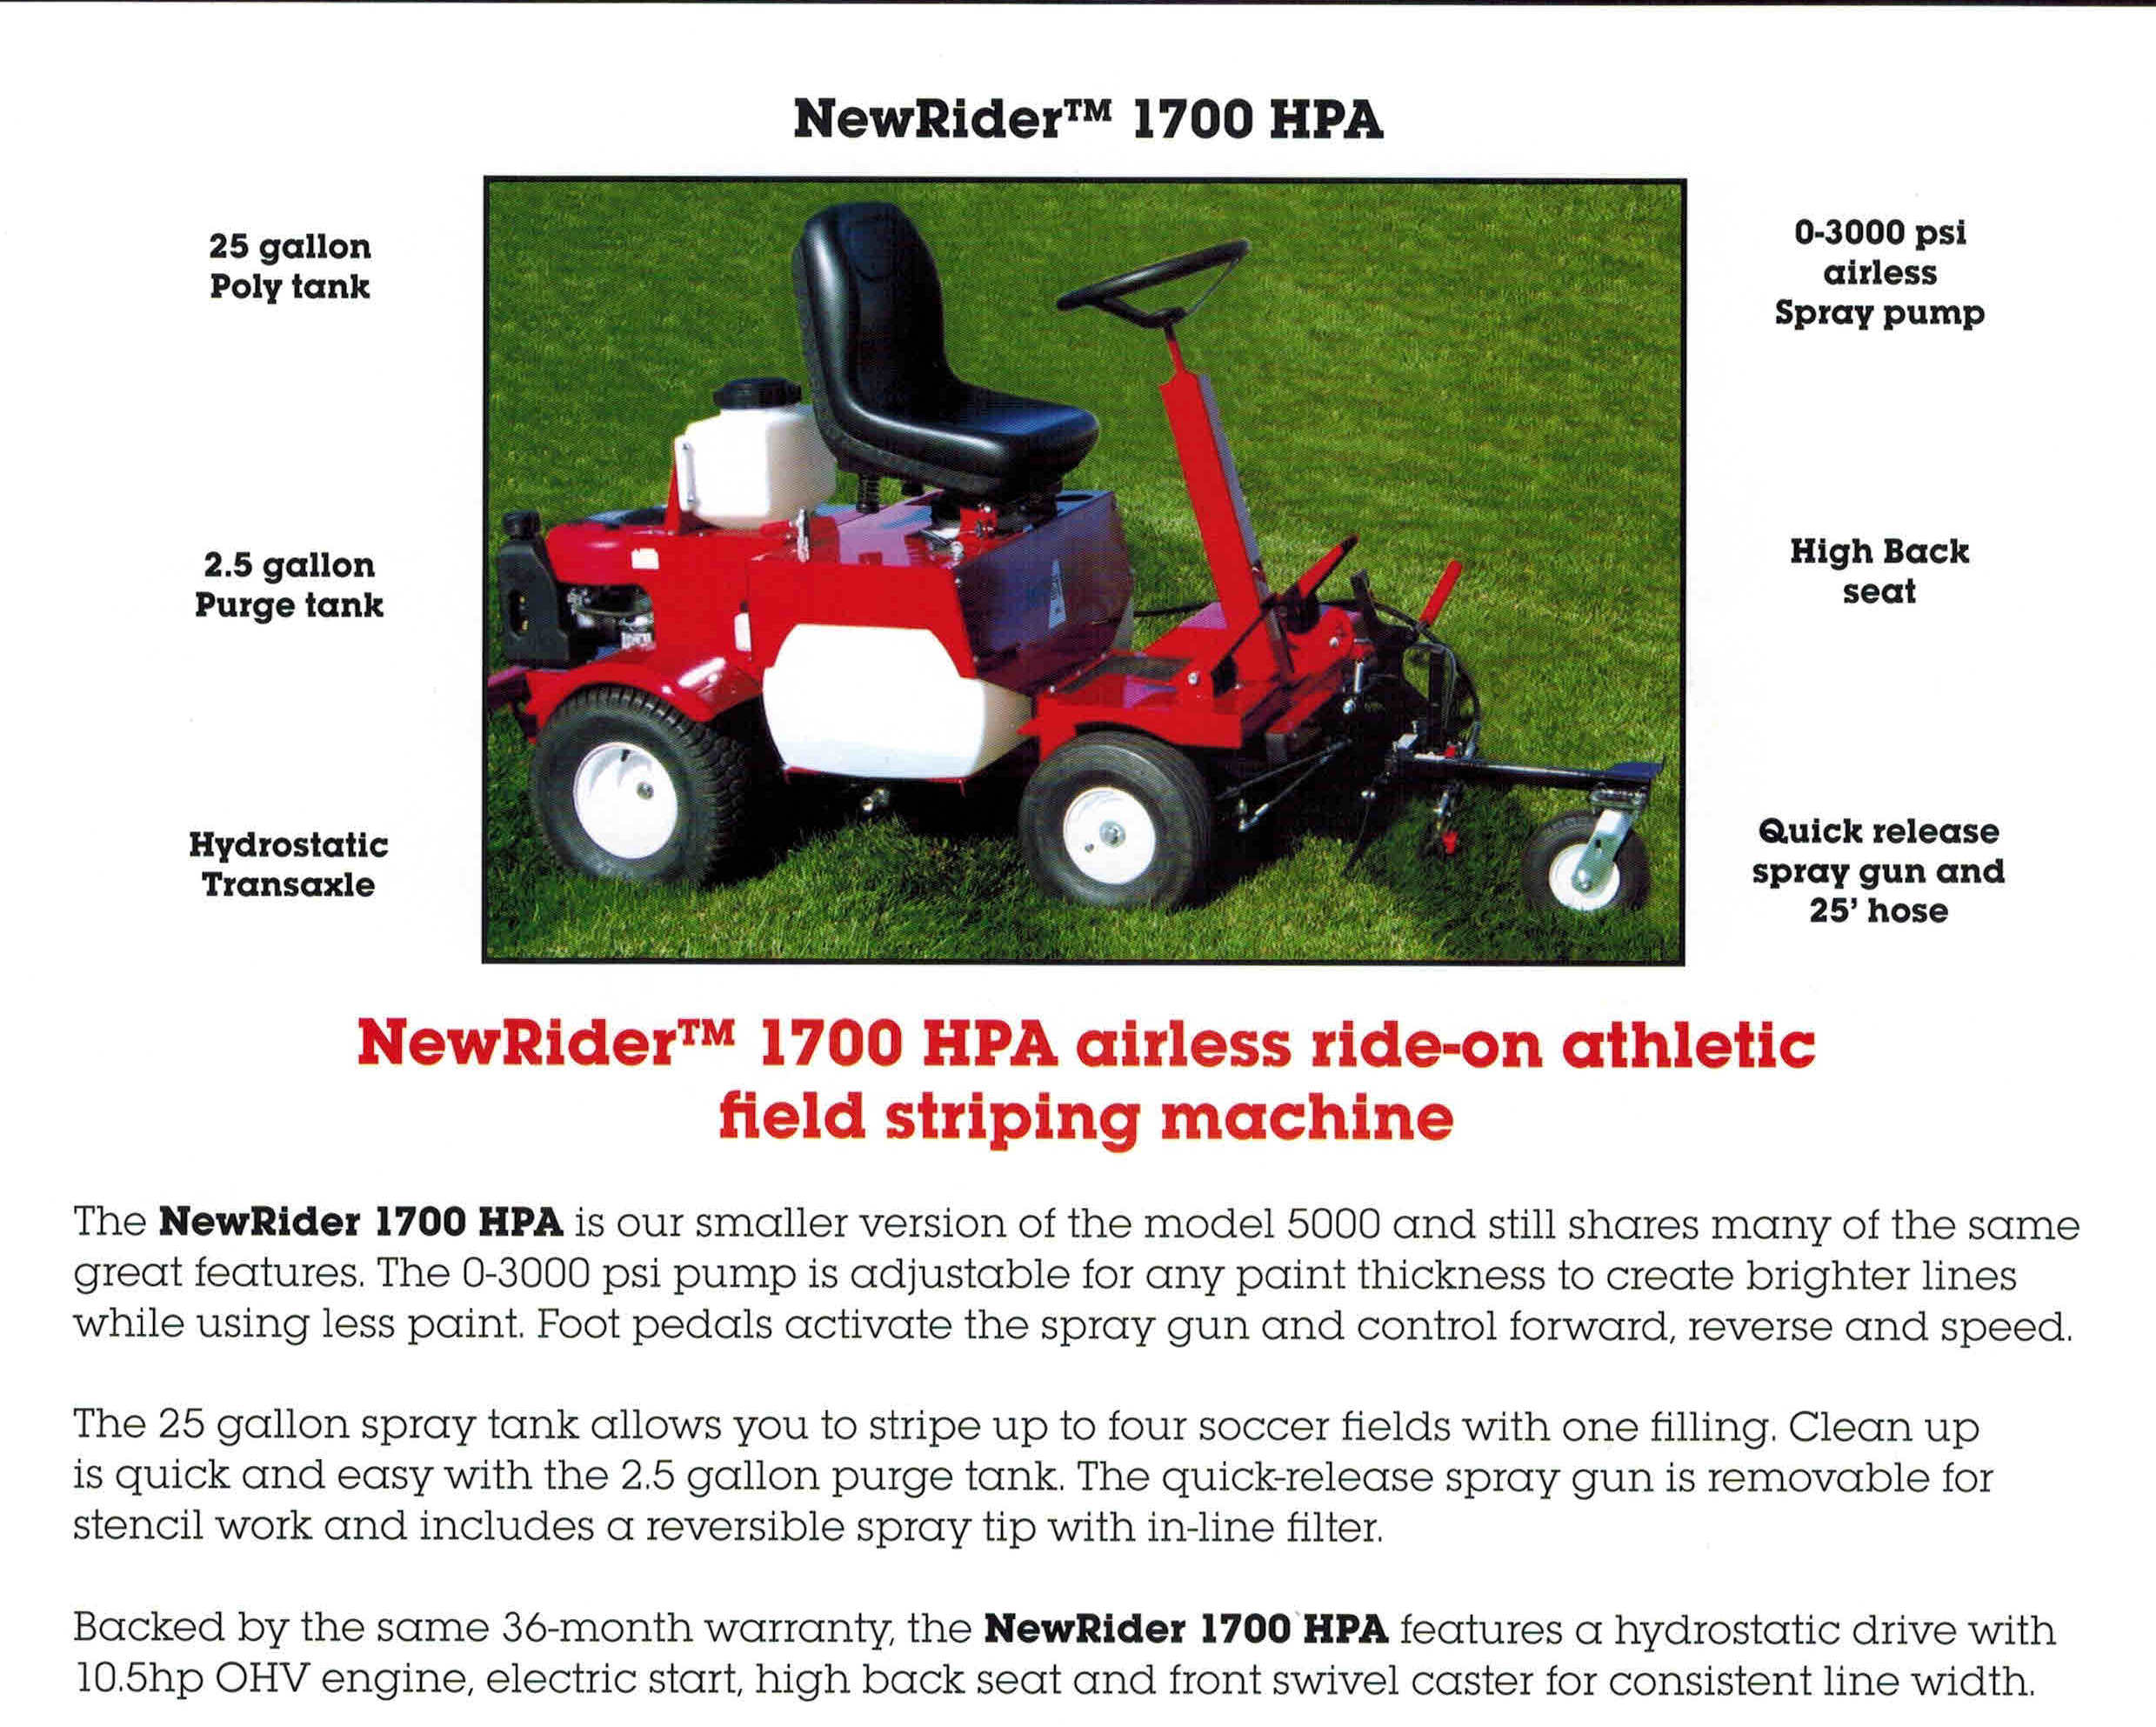 NewRider 1700 Airless, Ride-On Athletic Field Striping Machine